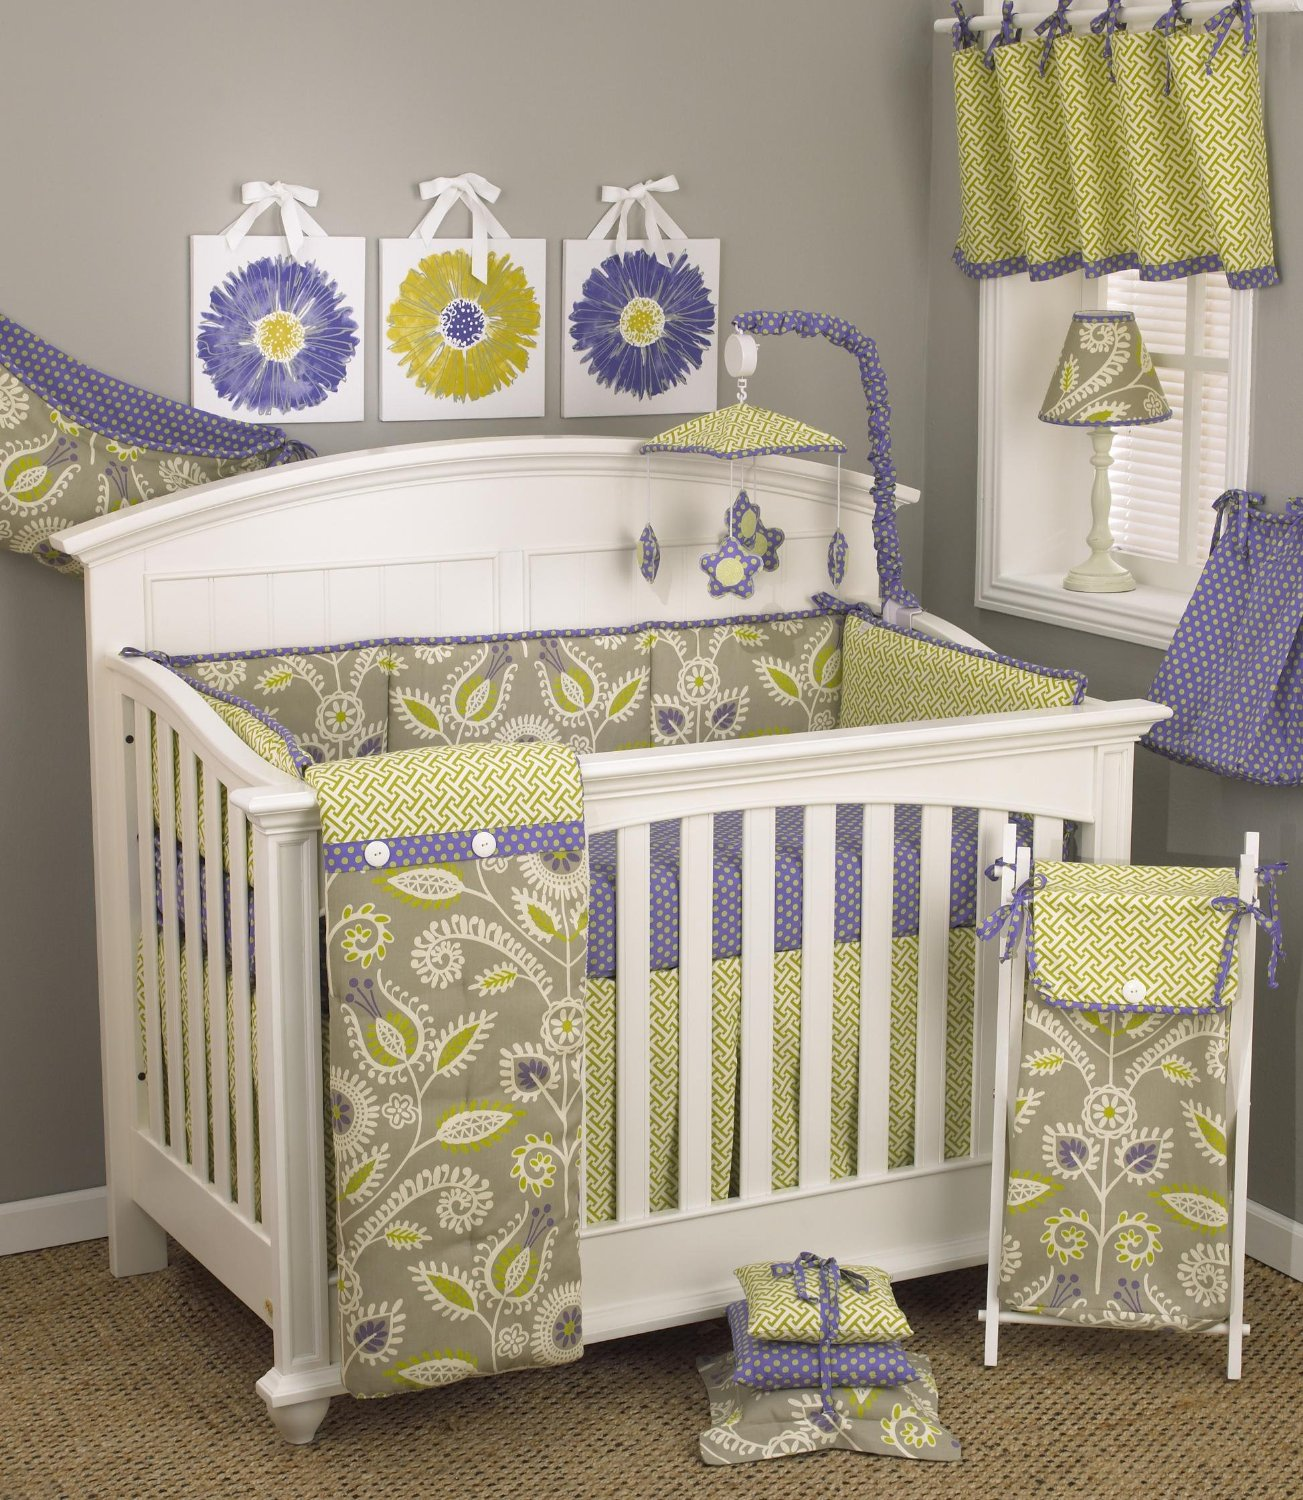 Cotton Tale Designs Periwinkle Crib Bedding Collection